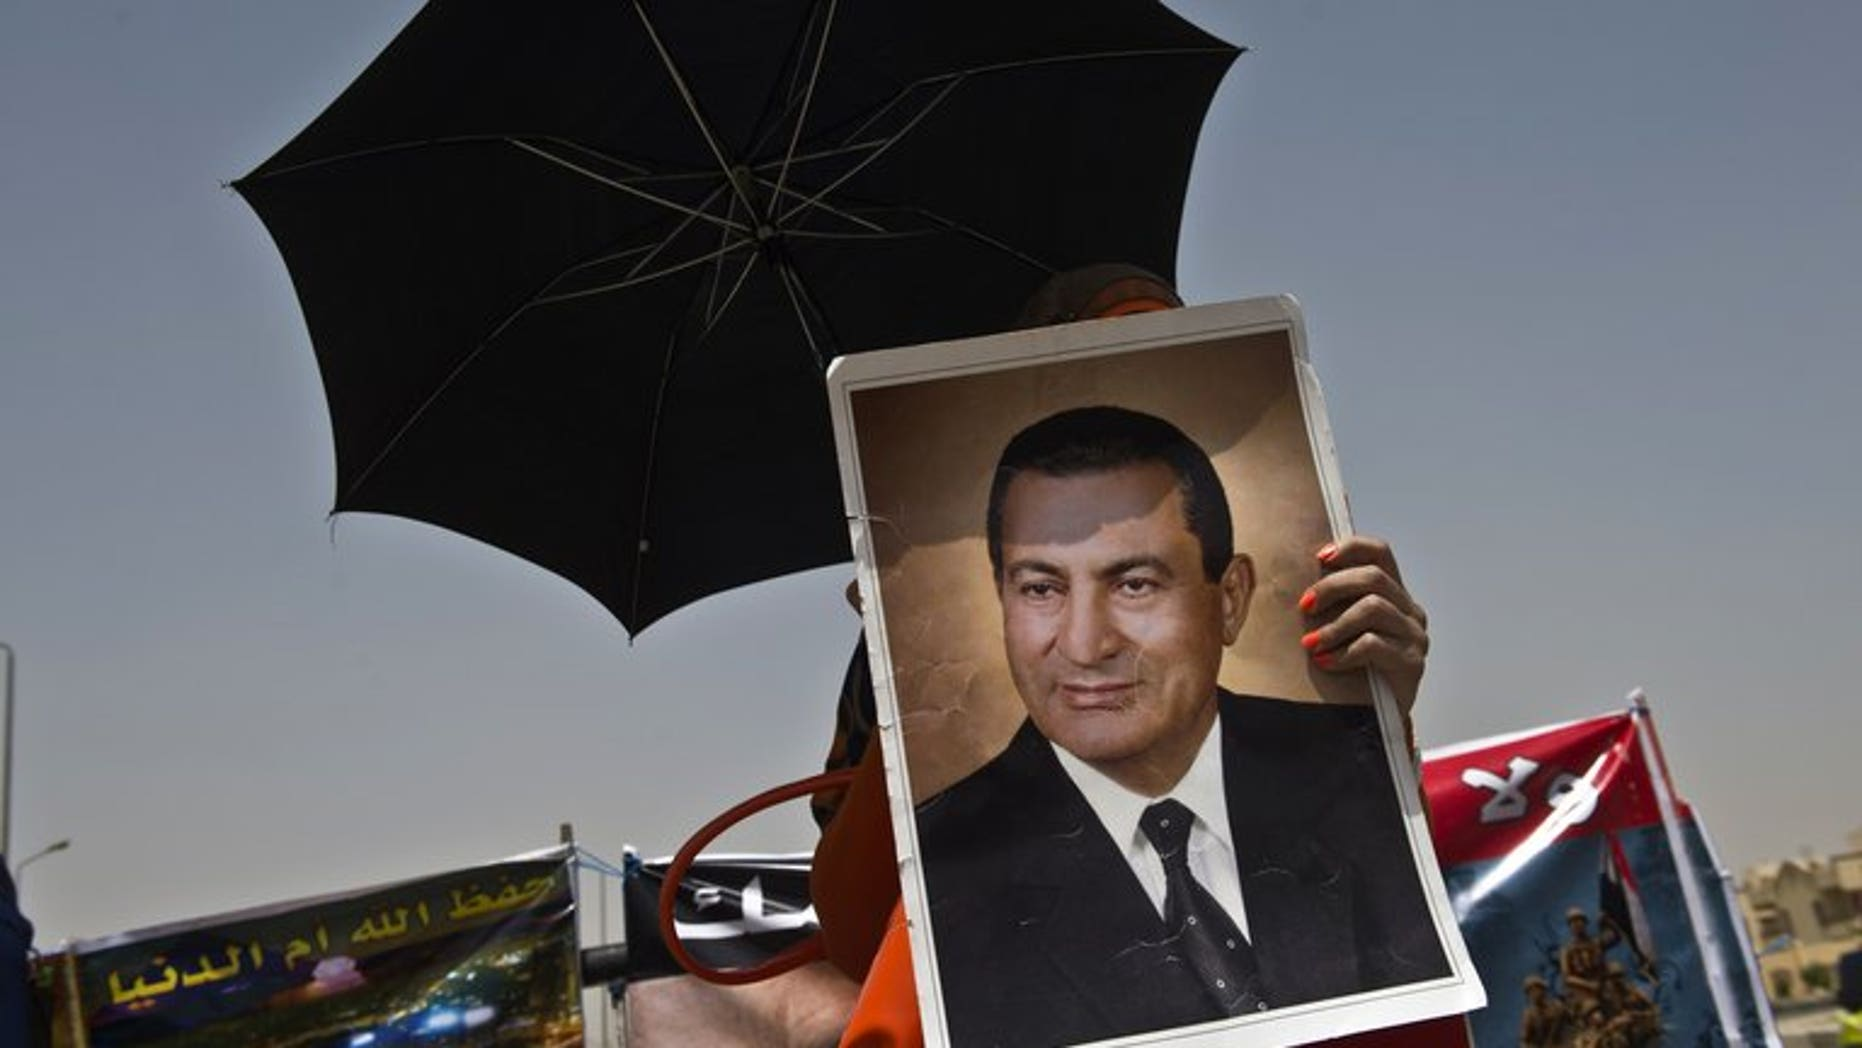 A supporter of Hosni Mubarak holds a portrait of him outside the court in Cairo last week during his retrial. An Egyptian court on Tuesday ended Mubarak's detention in one corruption case, judicial sources told AFP, but the ousted president will remain in custody on other charges.